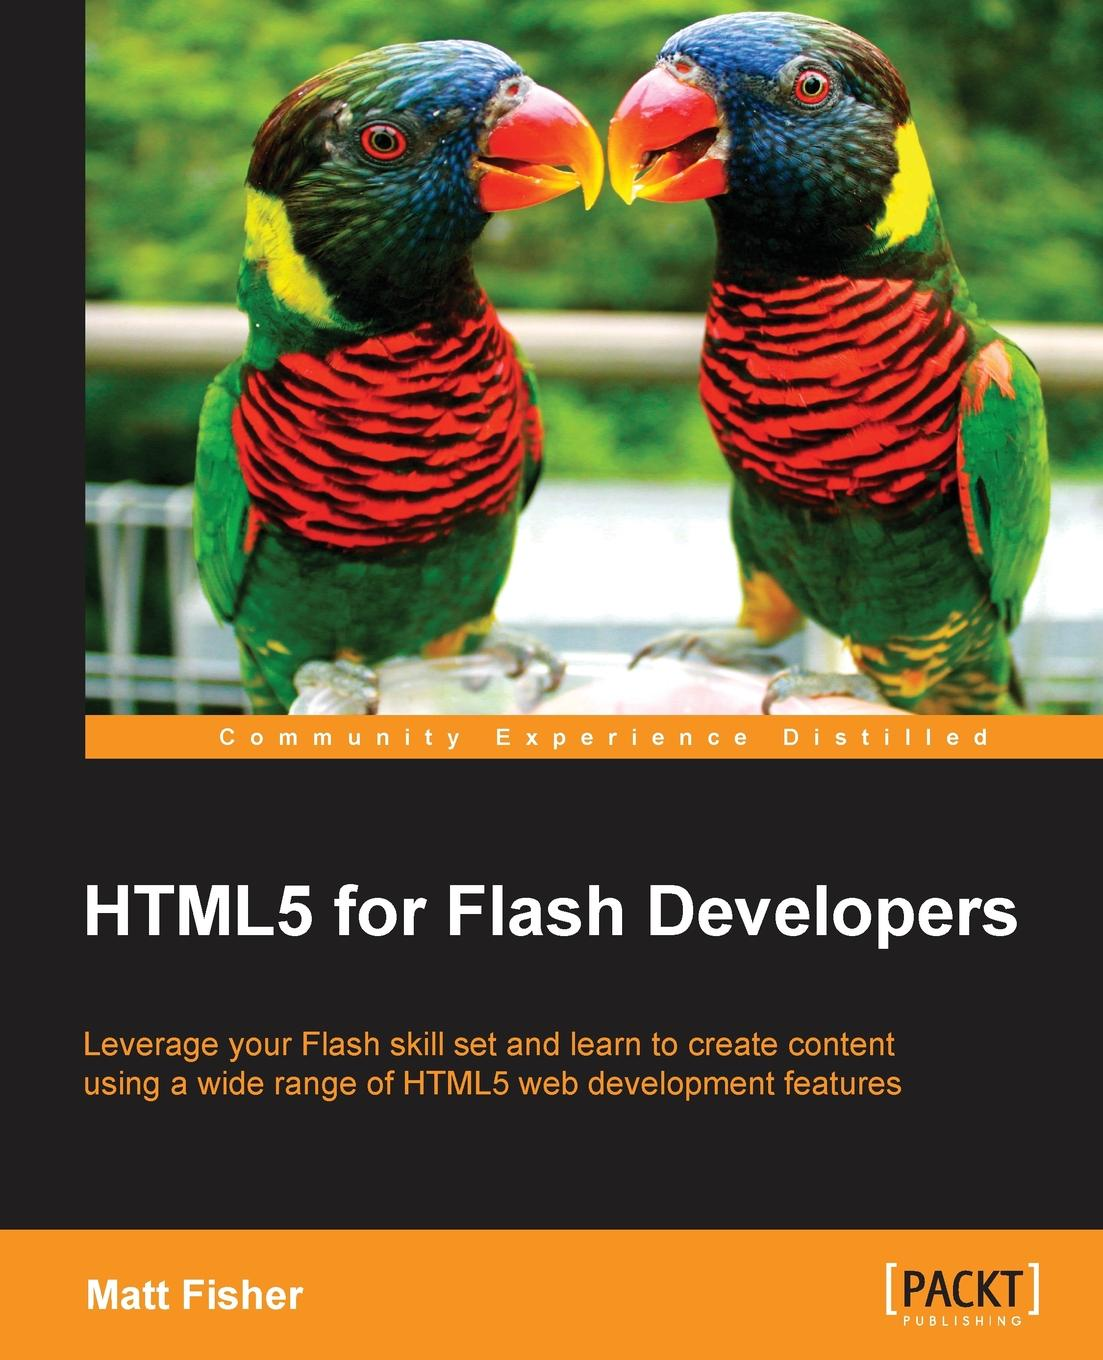 Matt Fisher Html5 for Flash Developers погребняк н ред христианское искусство 2018 каталог мастеров современного христианского искусства каталог ежегодник